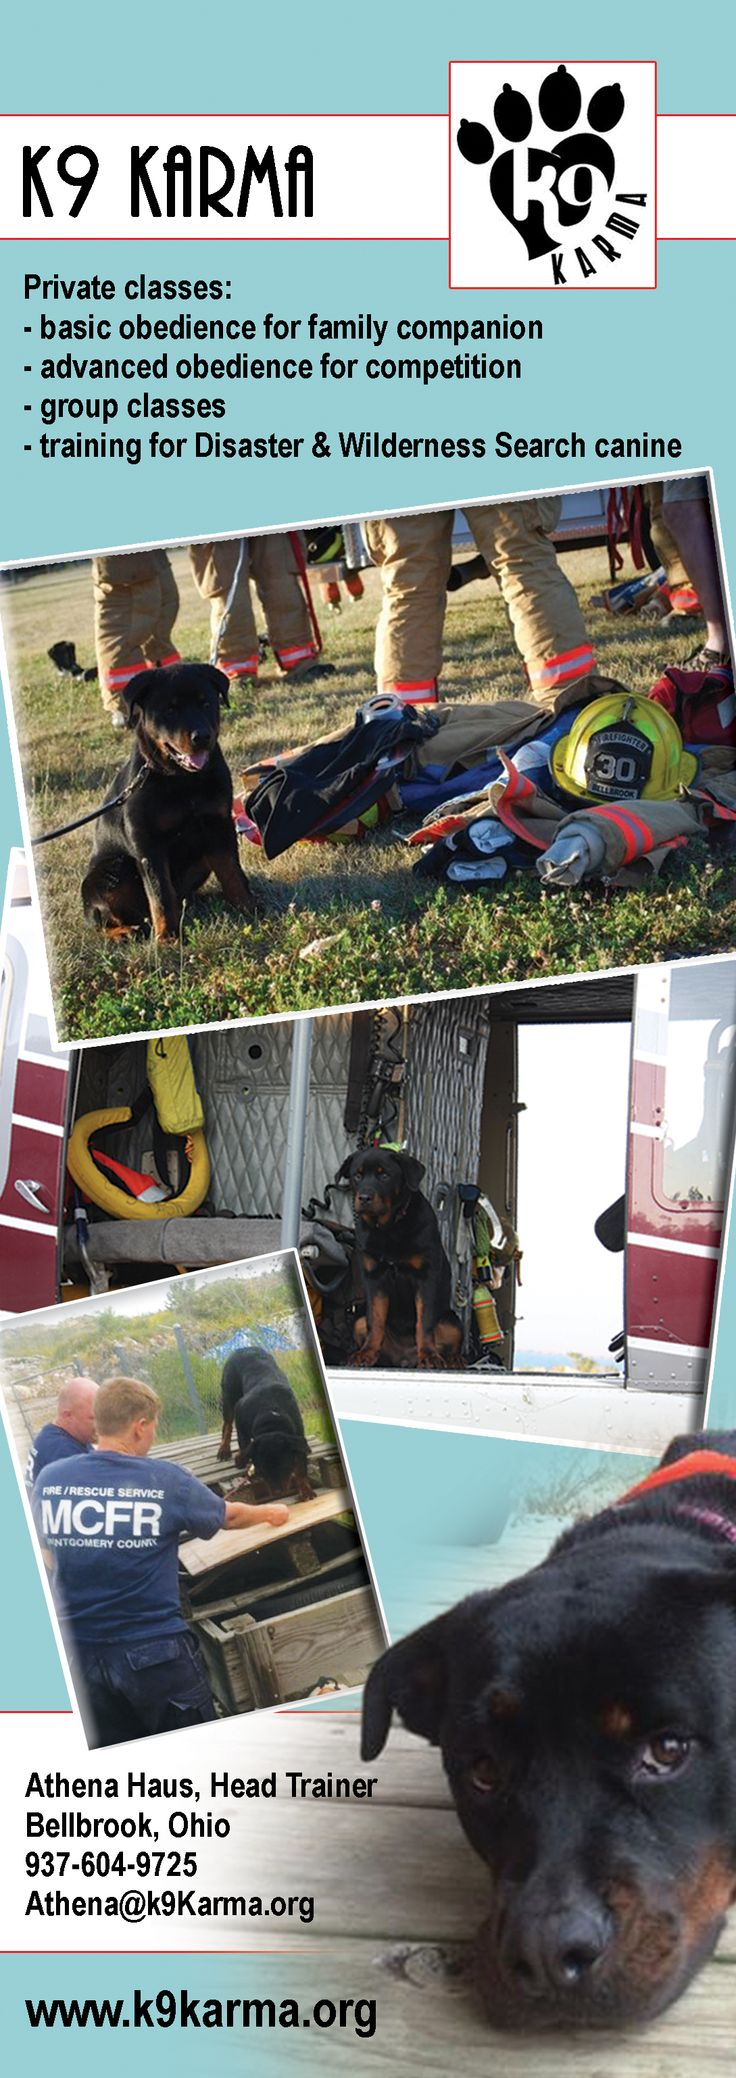 My name is Athena Haus and I am a 20 year veteran of the fire service. I am currently the EMS Officer for the Bellbrook Fire Department in Bellbrook, Ohio. I started my canine Search and Rescue career in 1995 with a female Rottweiler named Banshee who died at the age of 15.  In 2002, I partnered with a black Labrador Retriever named Gator, who turned 11 in February of 2012 and is now retired.